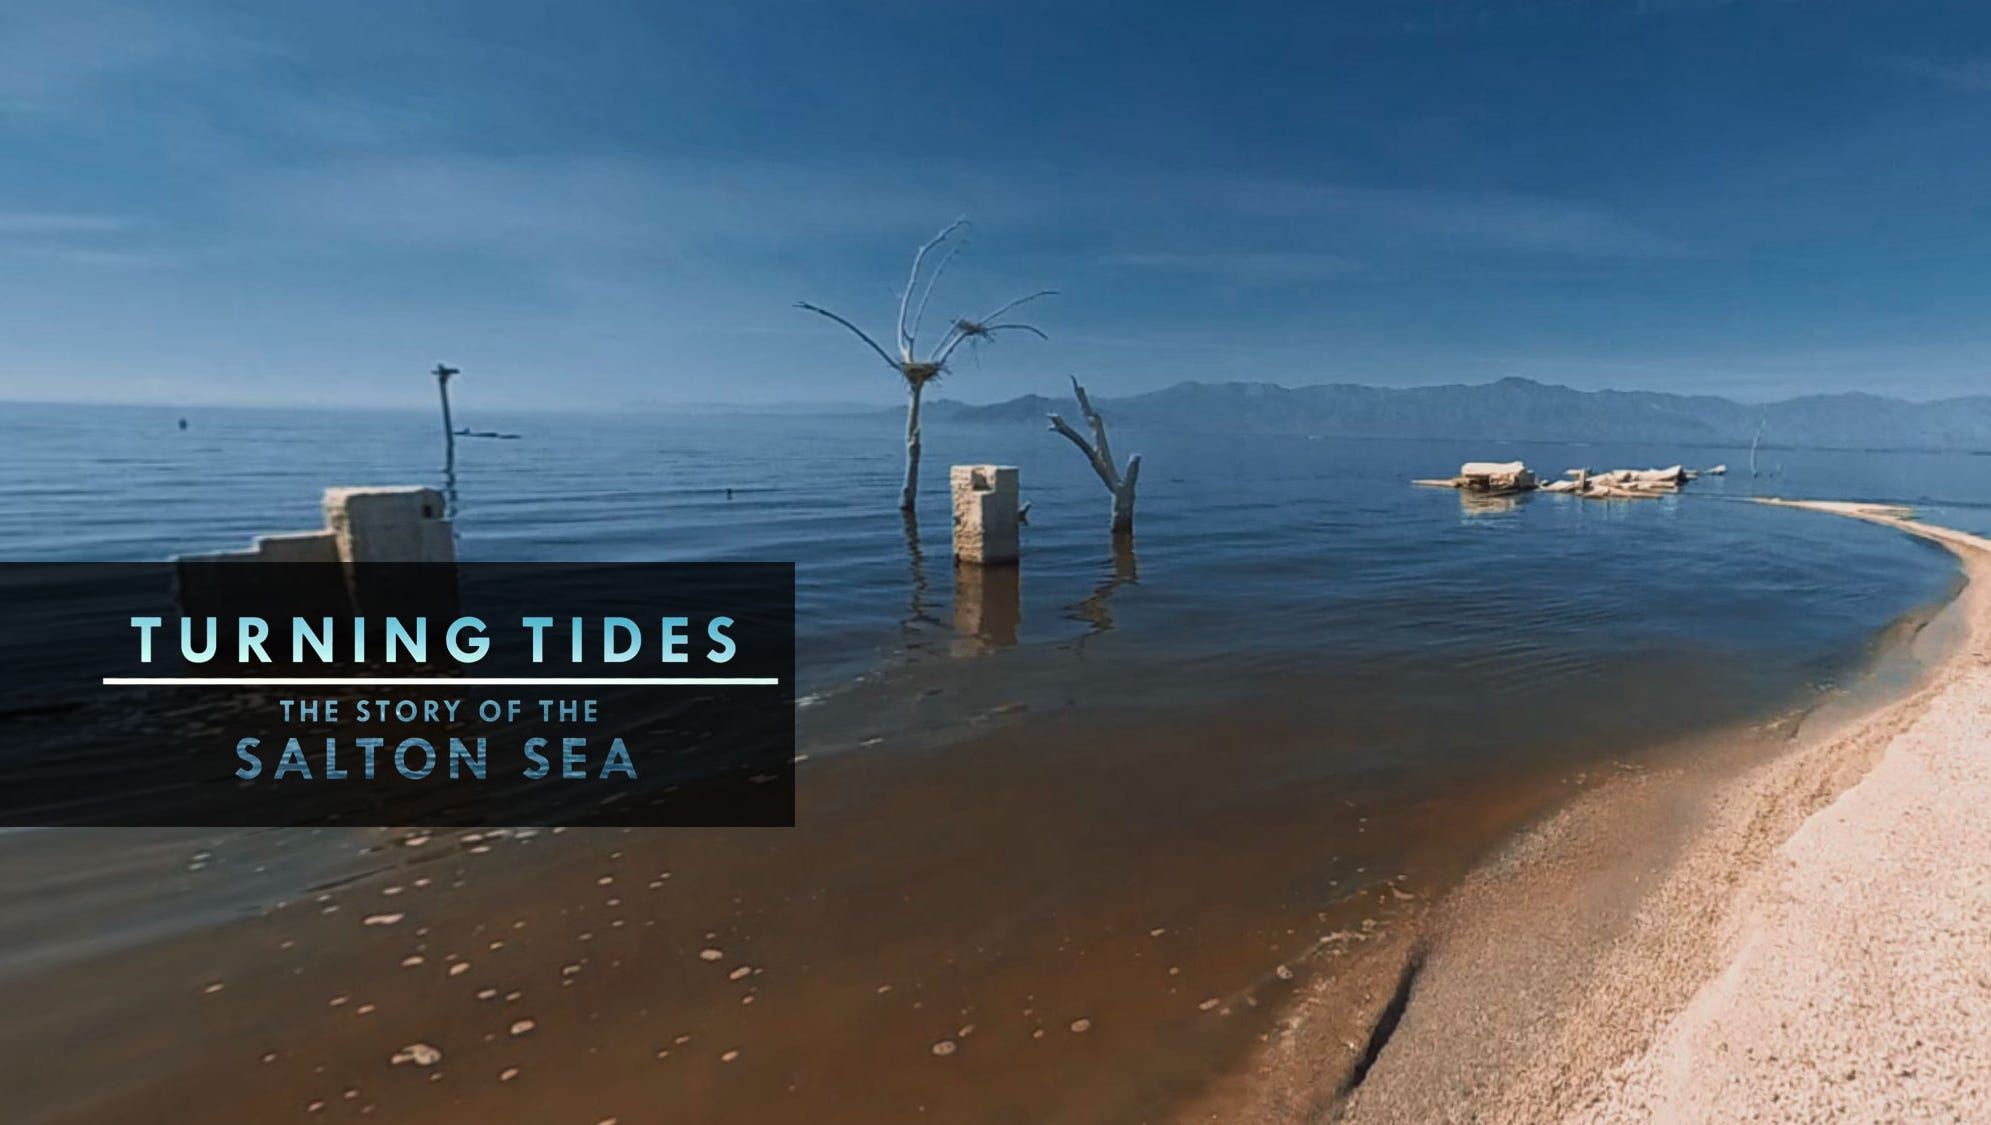 Salton Sea in 360: Experience the Salton Sea